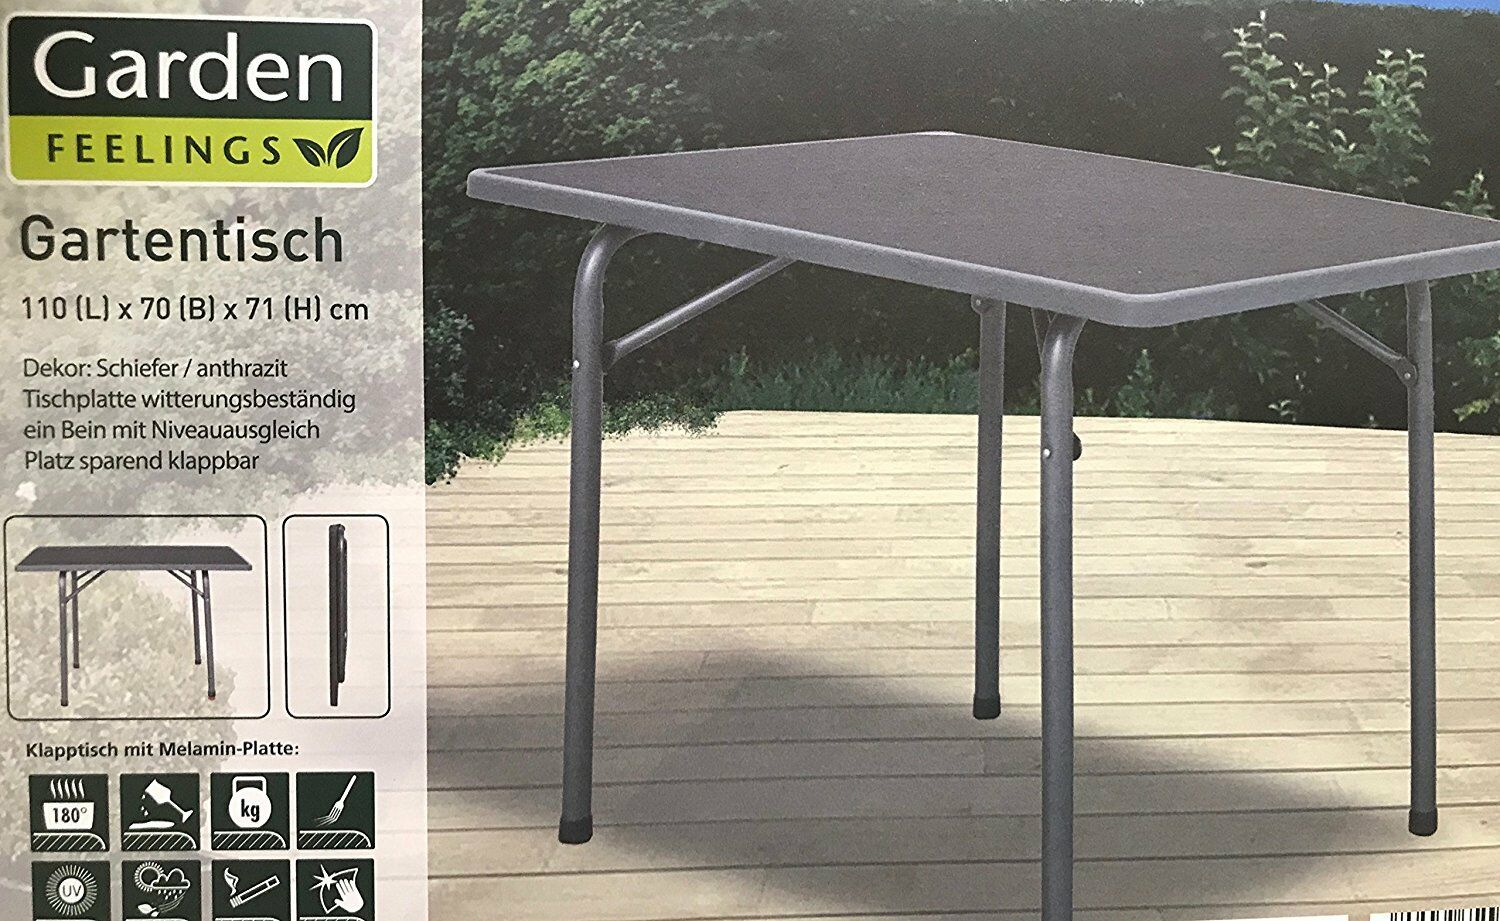 garden feelings klapptisch campingtisch tisch 110 x 71 x 70 cm eur 67 23 picclick fr. Black Bedroom Furniture Sets. Home Design Ideas